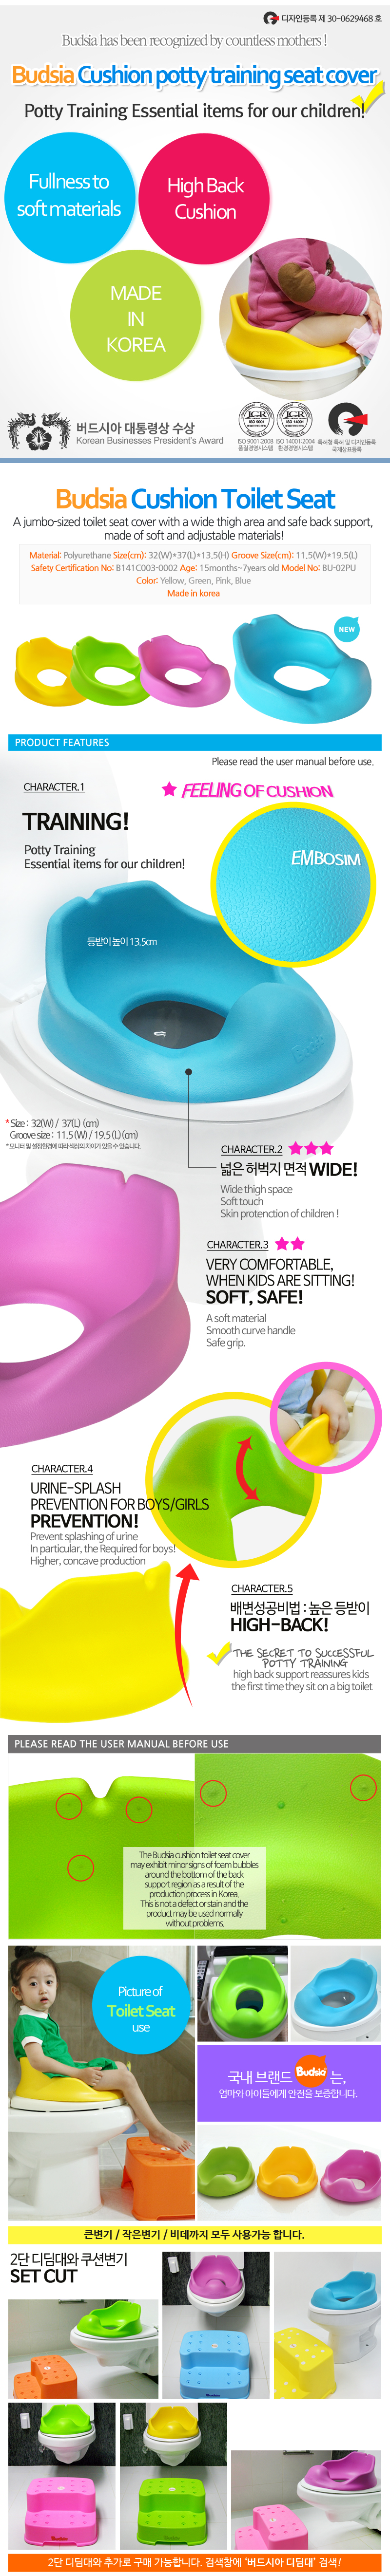 [Budsia] Cushion Baby Toilet Seat